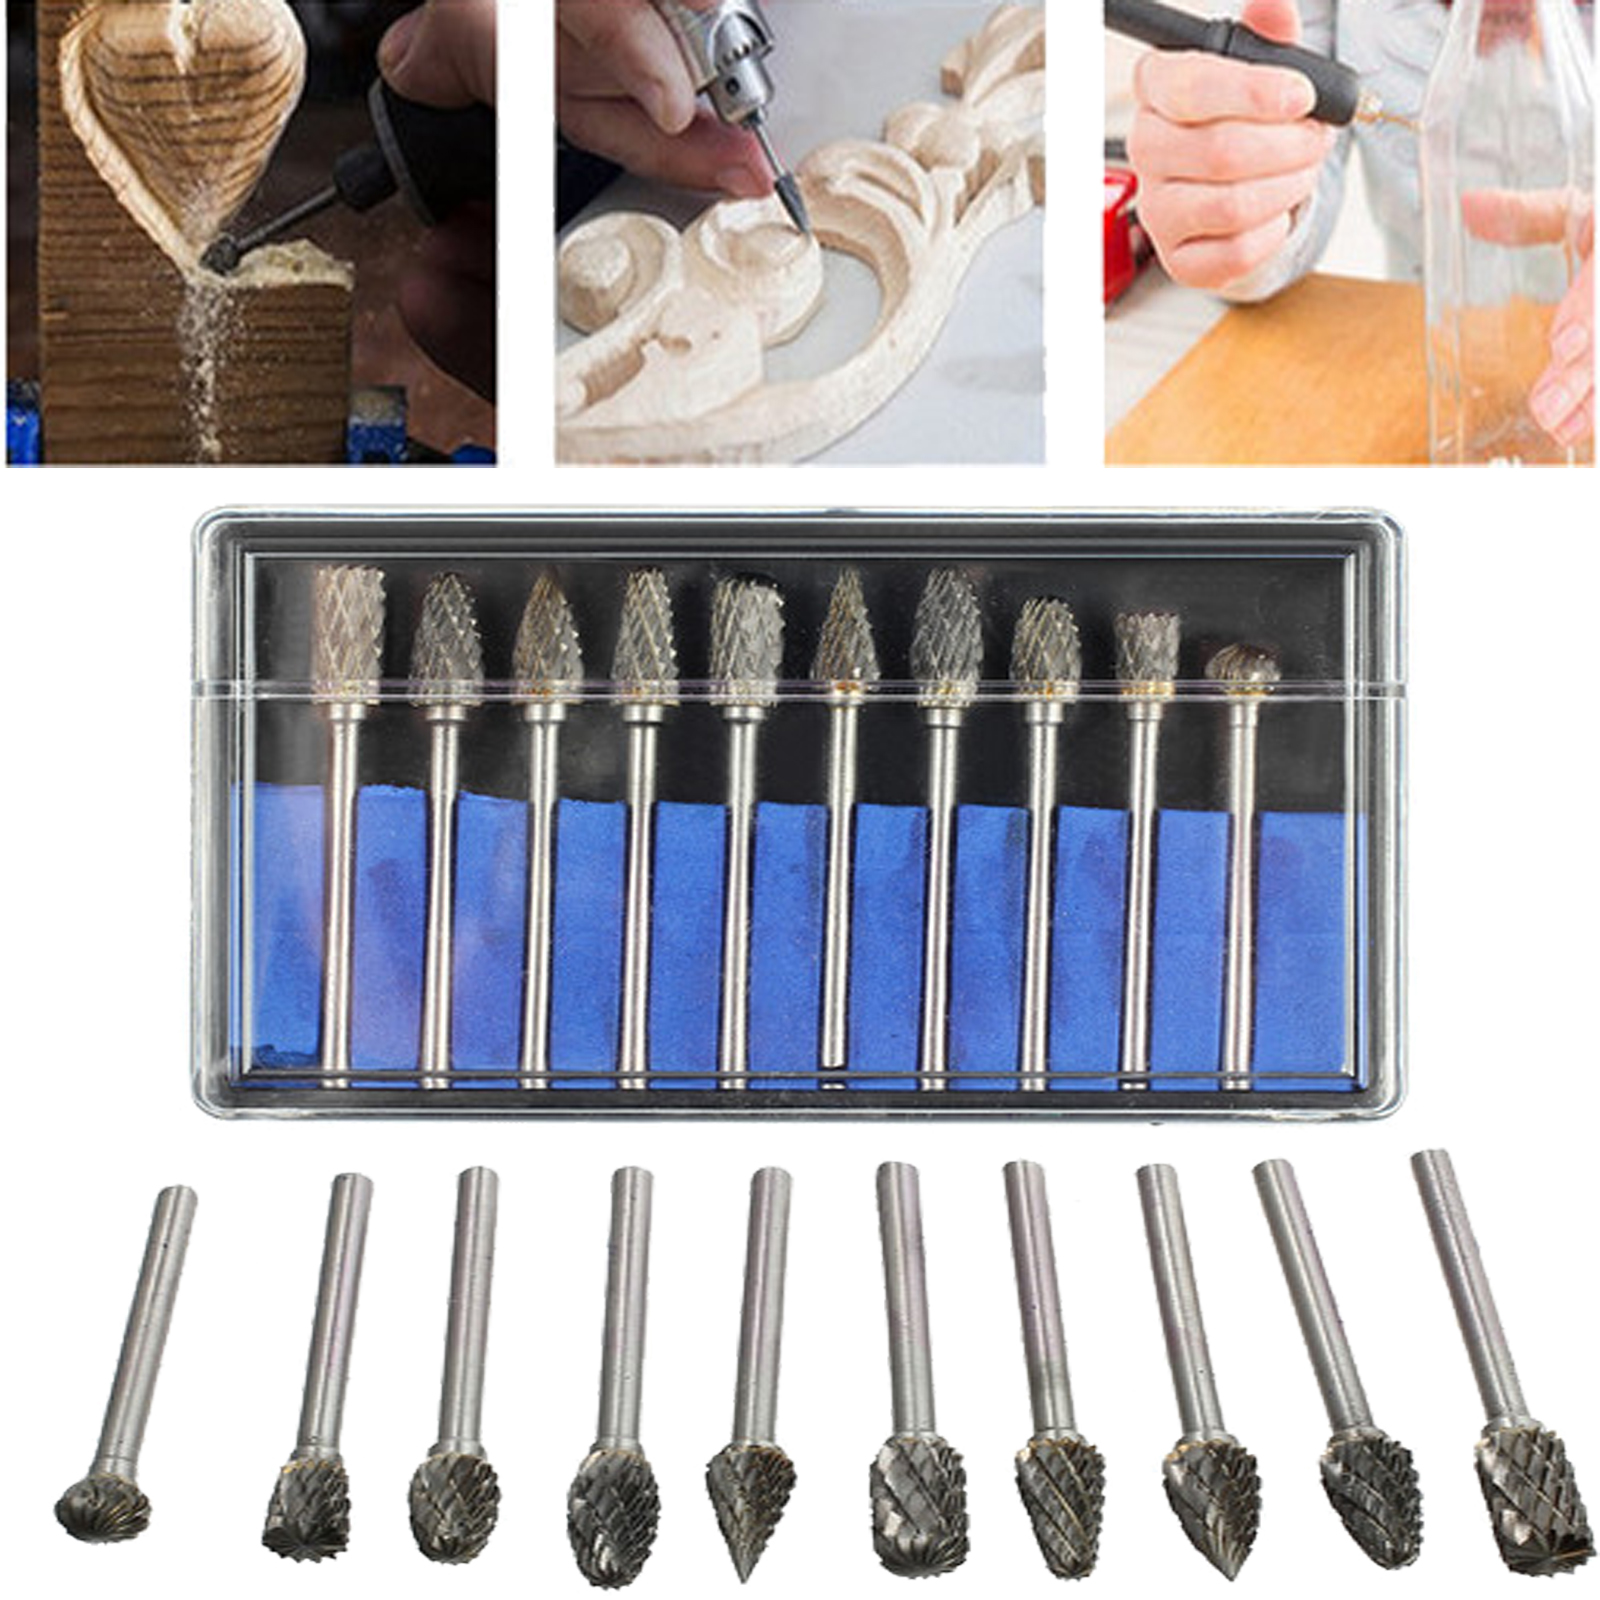 10Pcs Tungsten Steel Solid Carbide Burrs For Dremel Rotary Tool Drill Bit